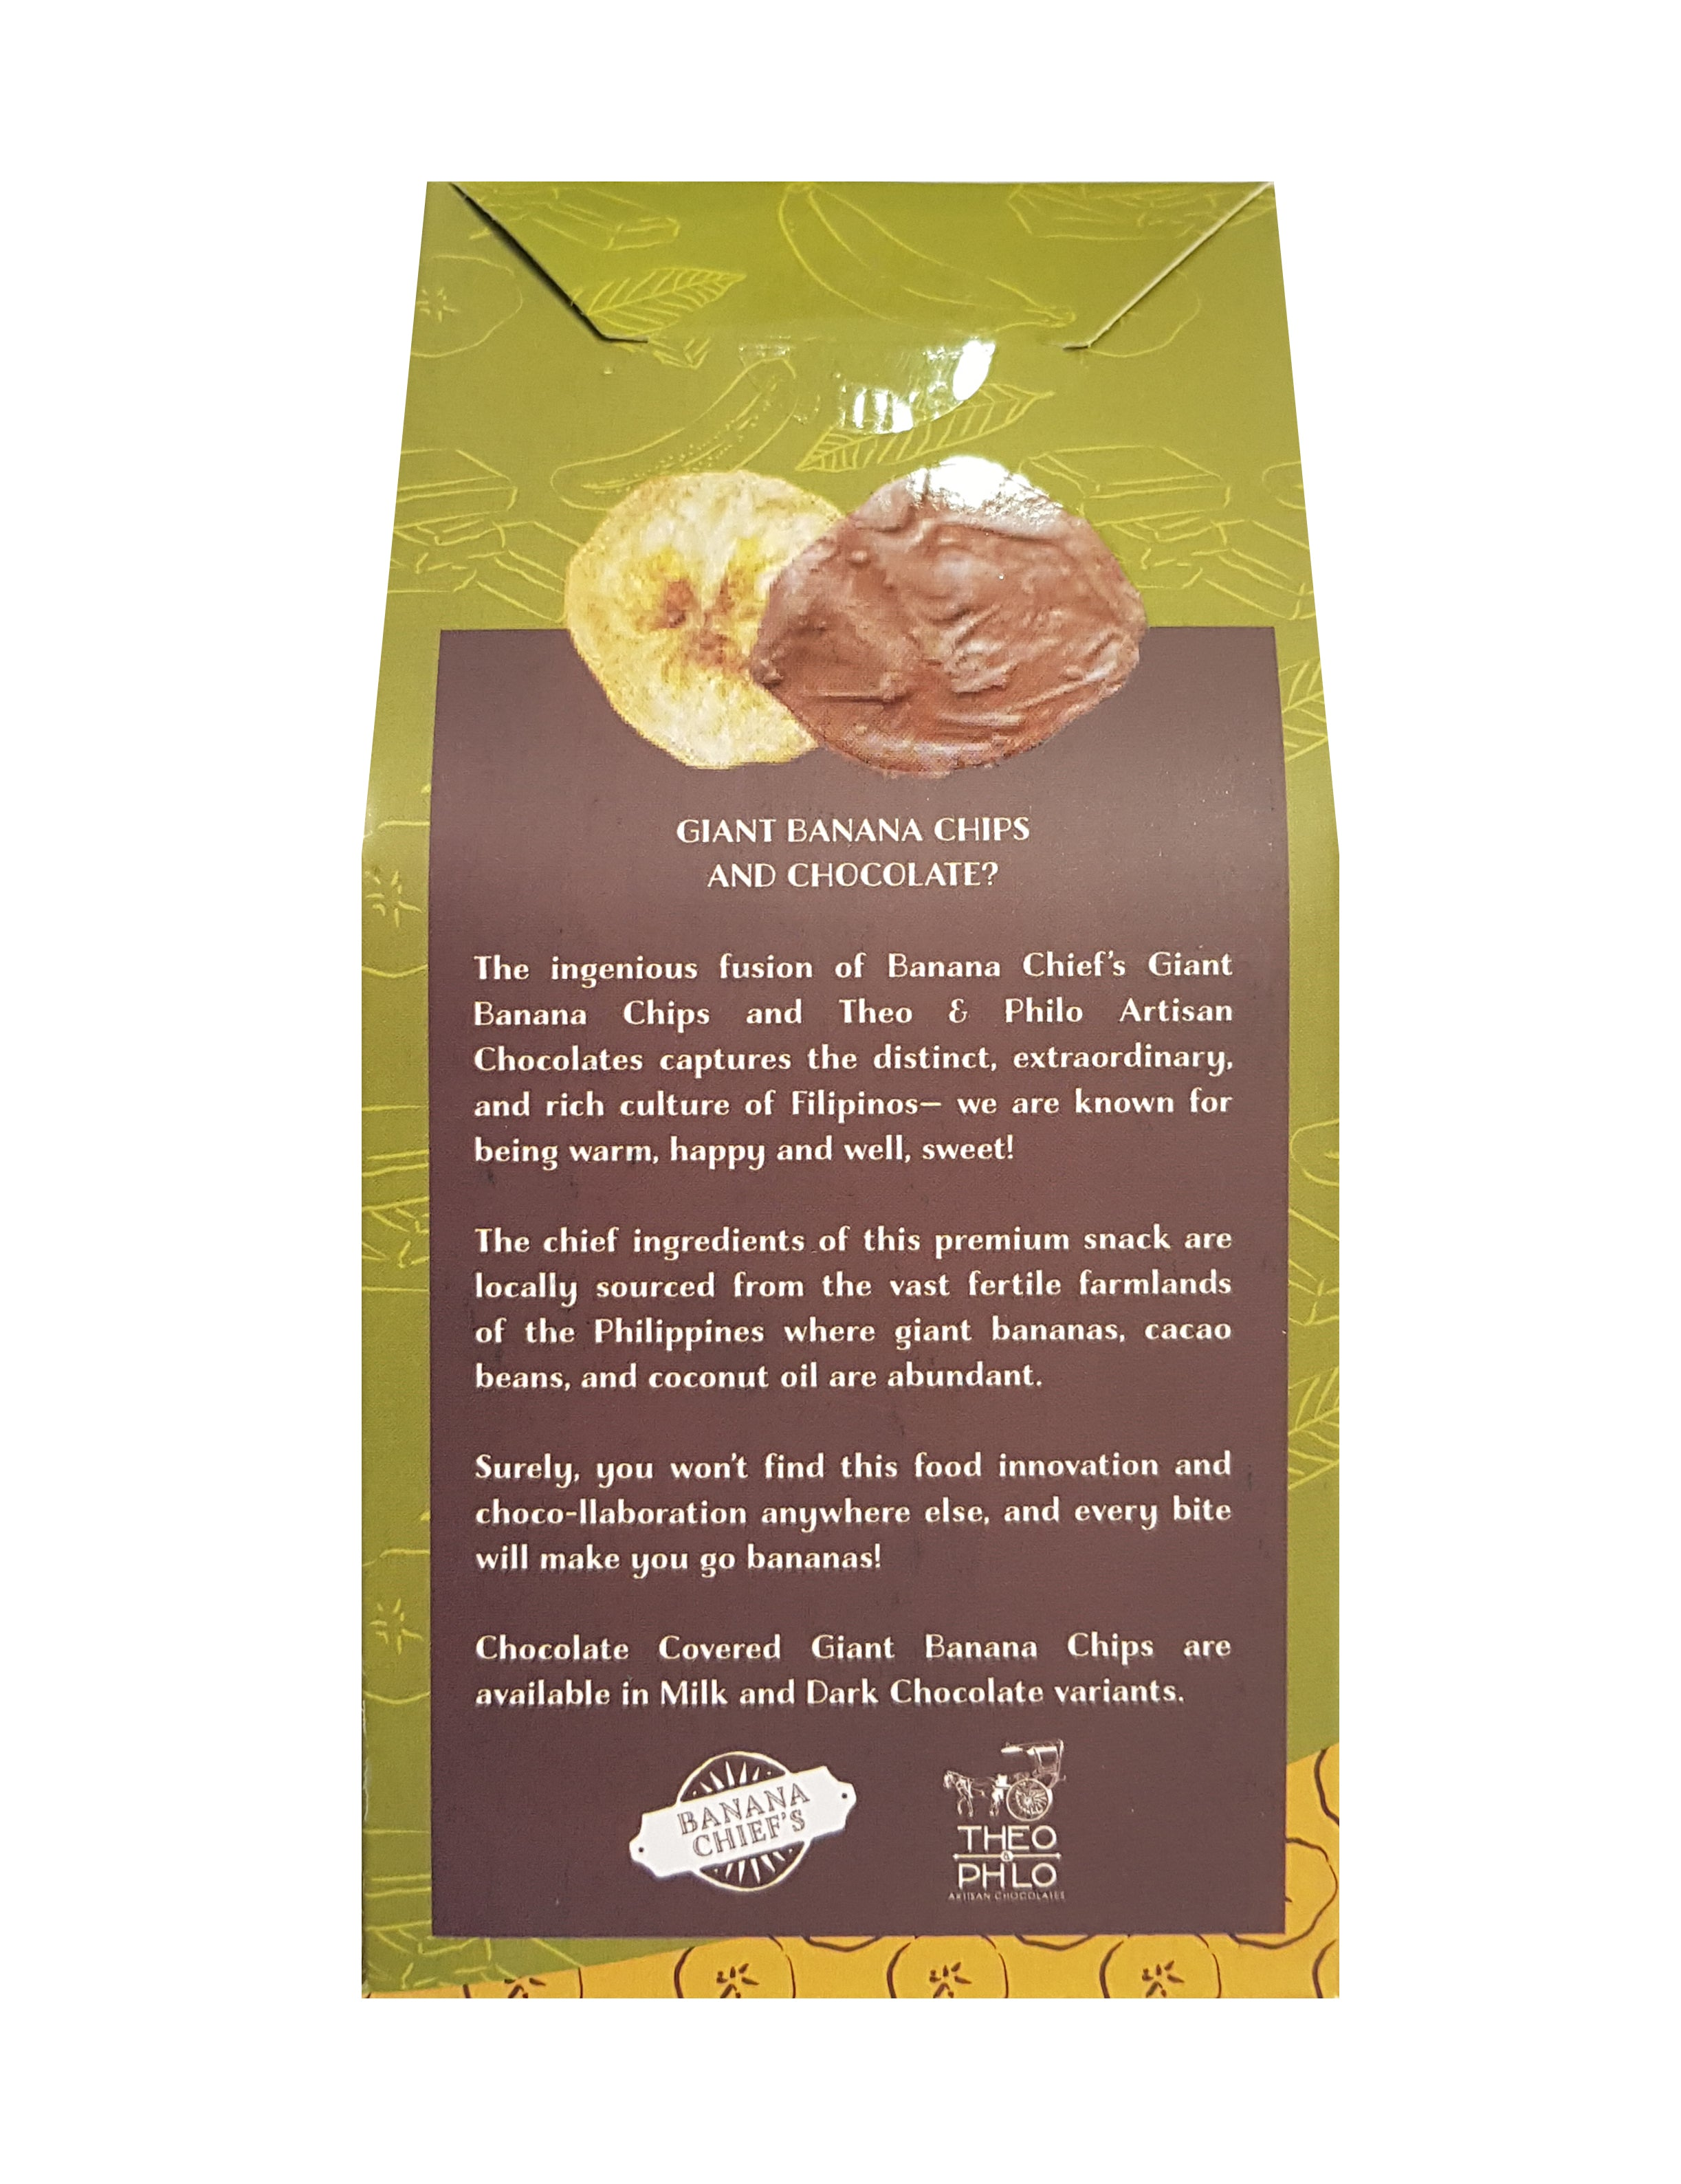 Banana Chief's x Theo & Philo - Milk Chocolate-covered Giant Banana Chips (100 grams)